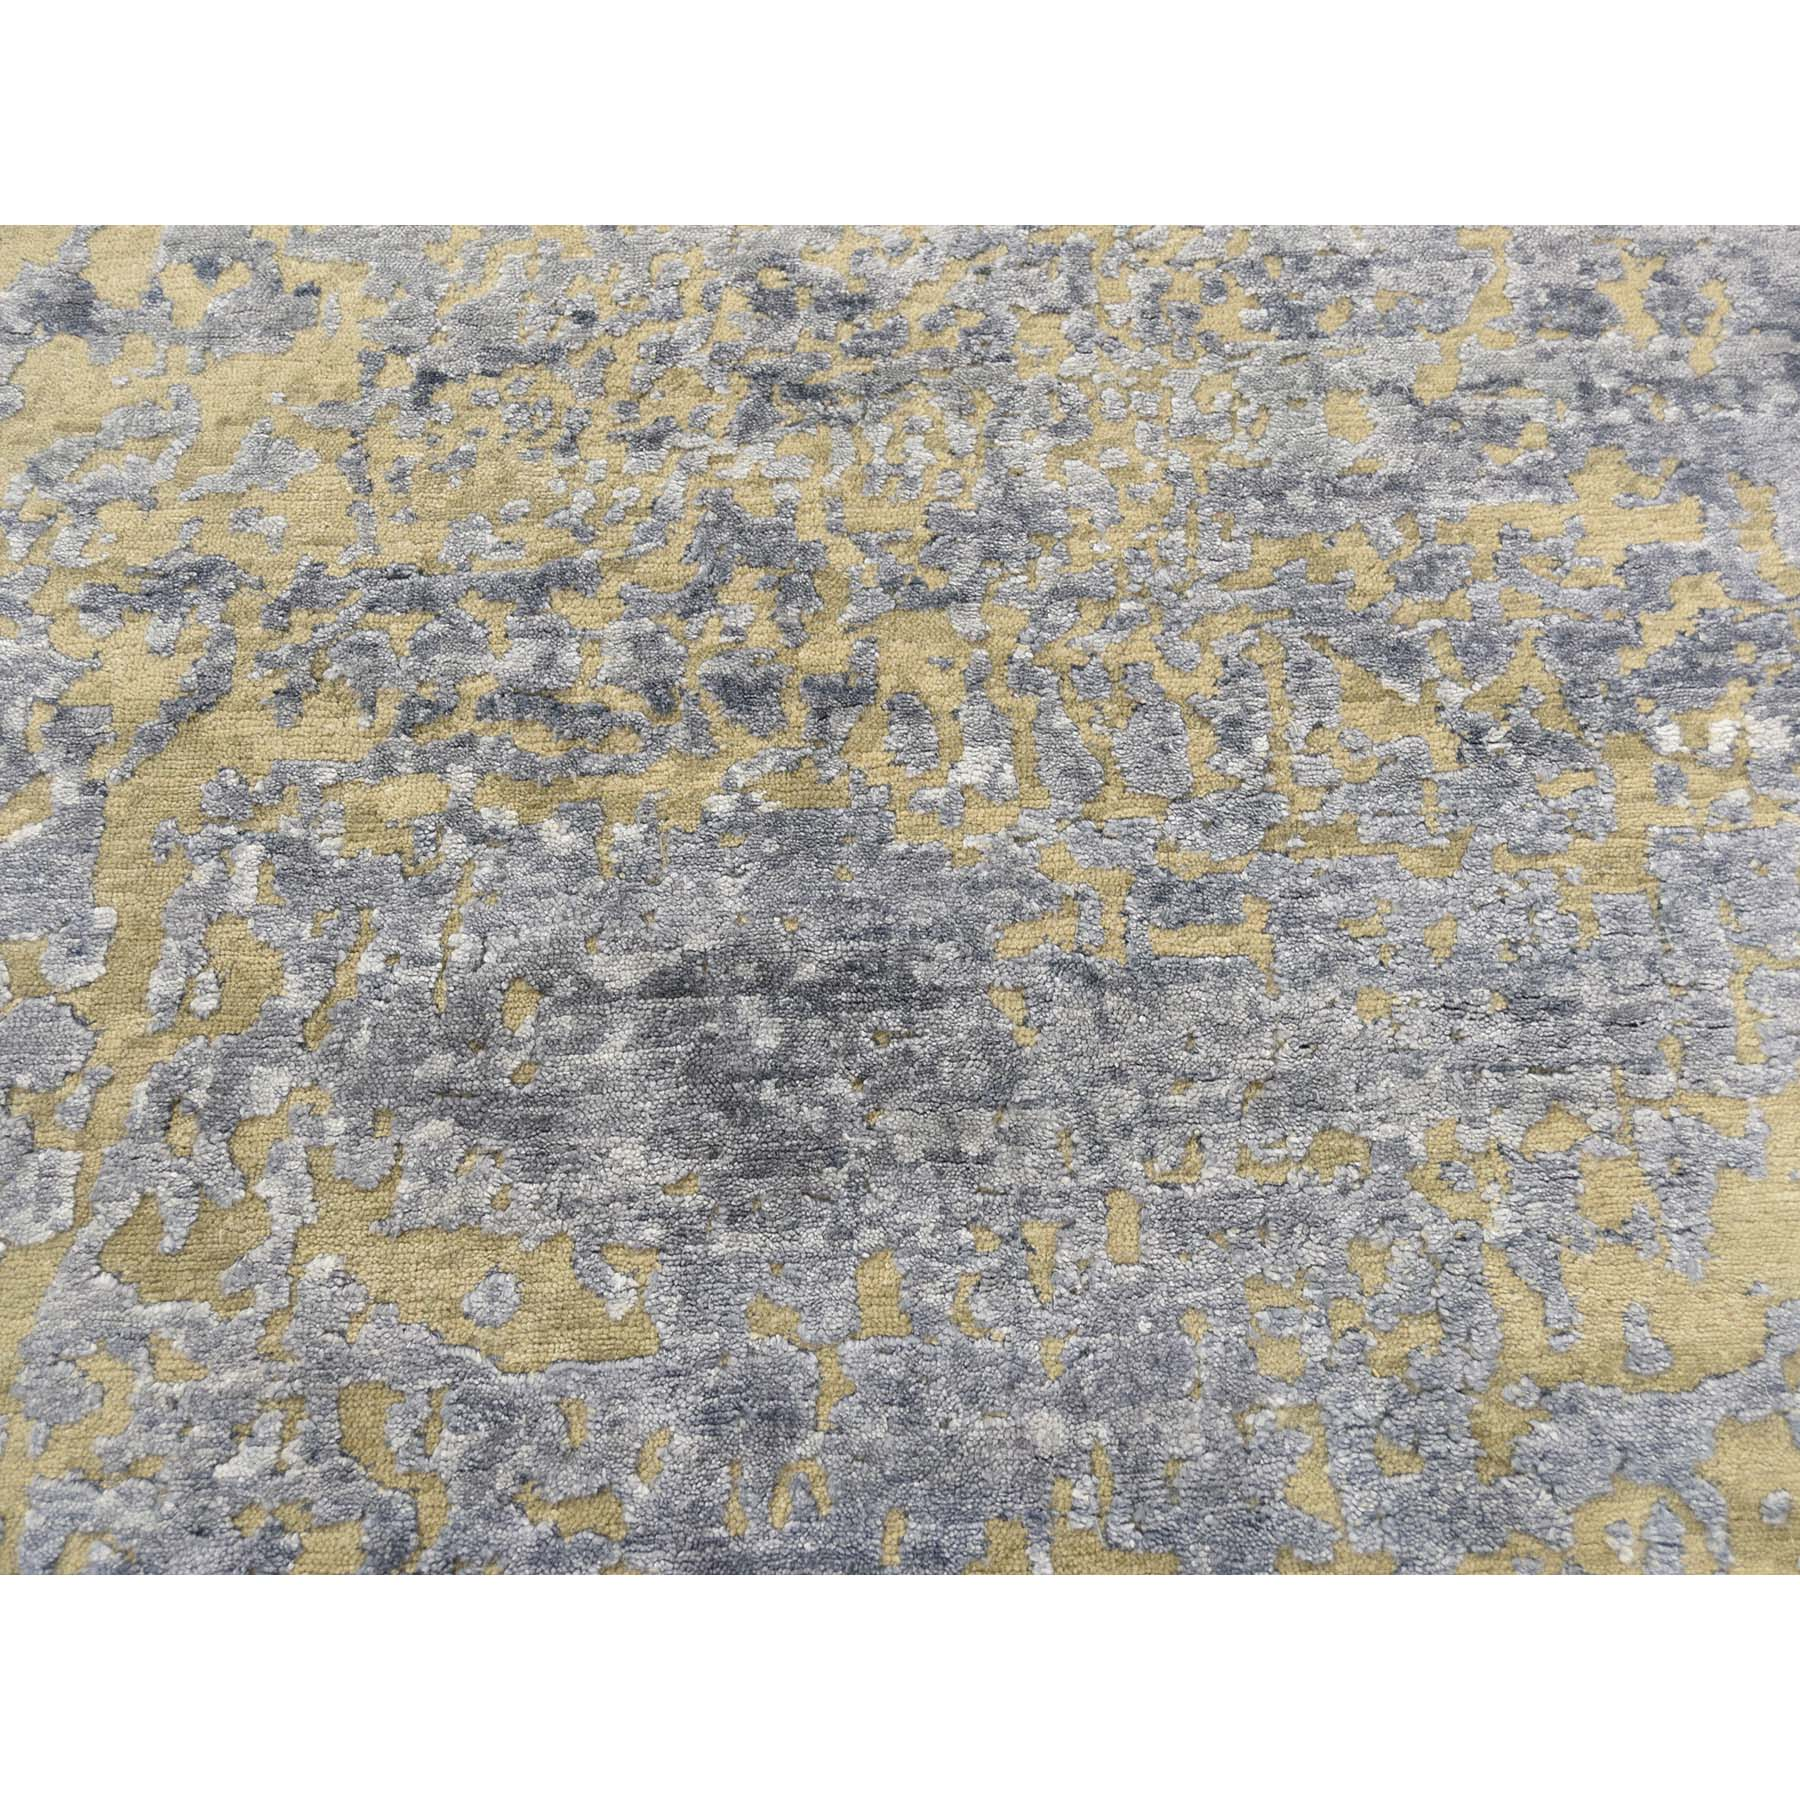 8-x9-7  Hand-Knotted Hi-Lo Pile Wool and Silk Abstract Design Oriental Rug